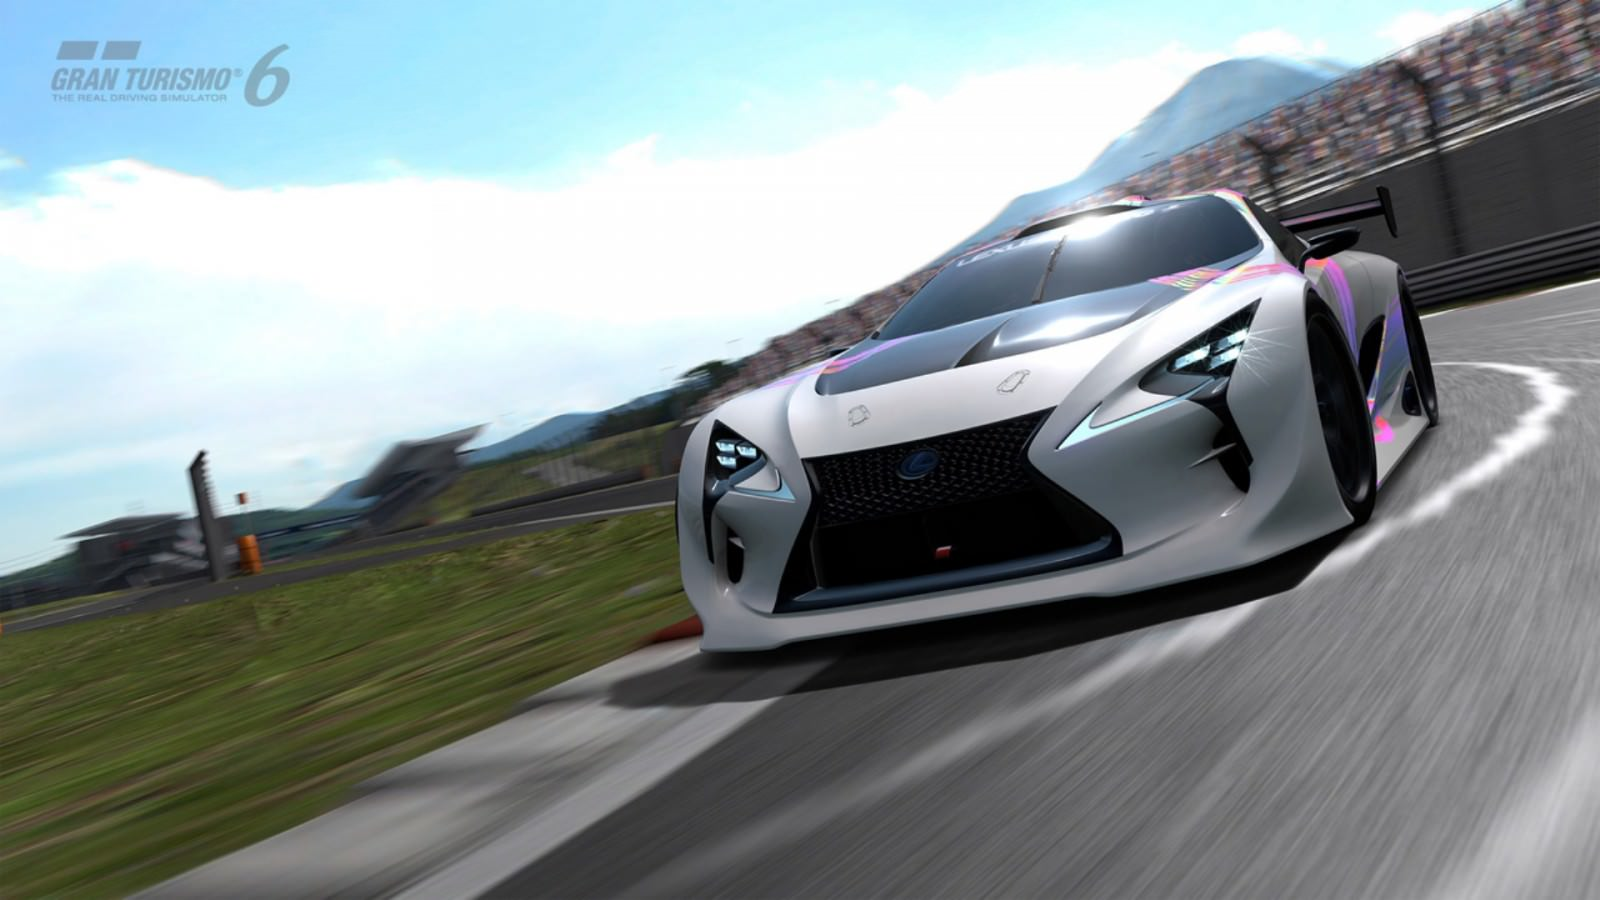 Photo 18 besides Lexus Lc500 Race Super Gt 2017 also Lexus Lc 500 Racer To Replace Rc F In Japans Super Gt Series in addition Lexus Lc500 2017 New Car also Hear The Lexus Rc F Gt500 Race Car Video. on lexus rc gt500 race car